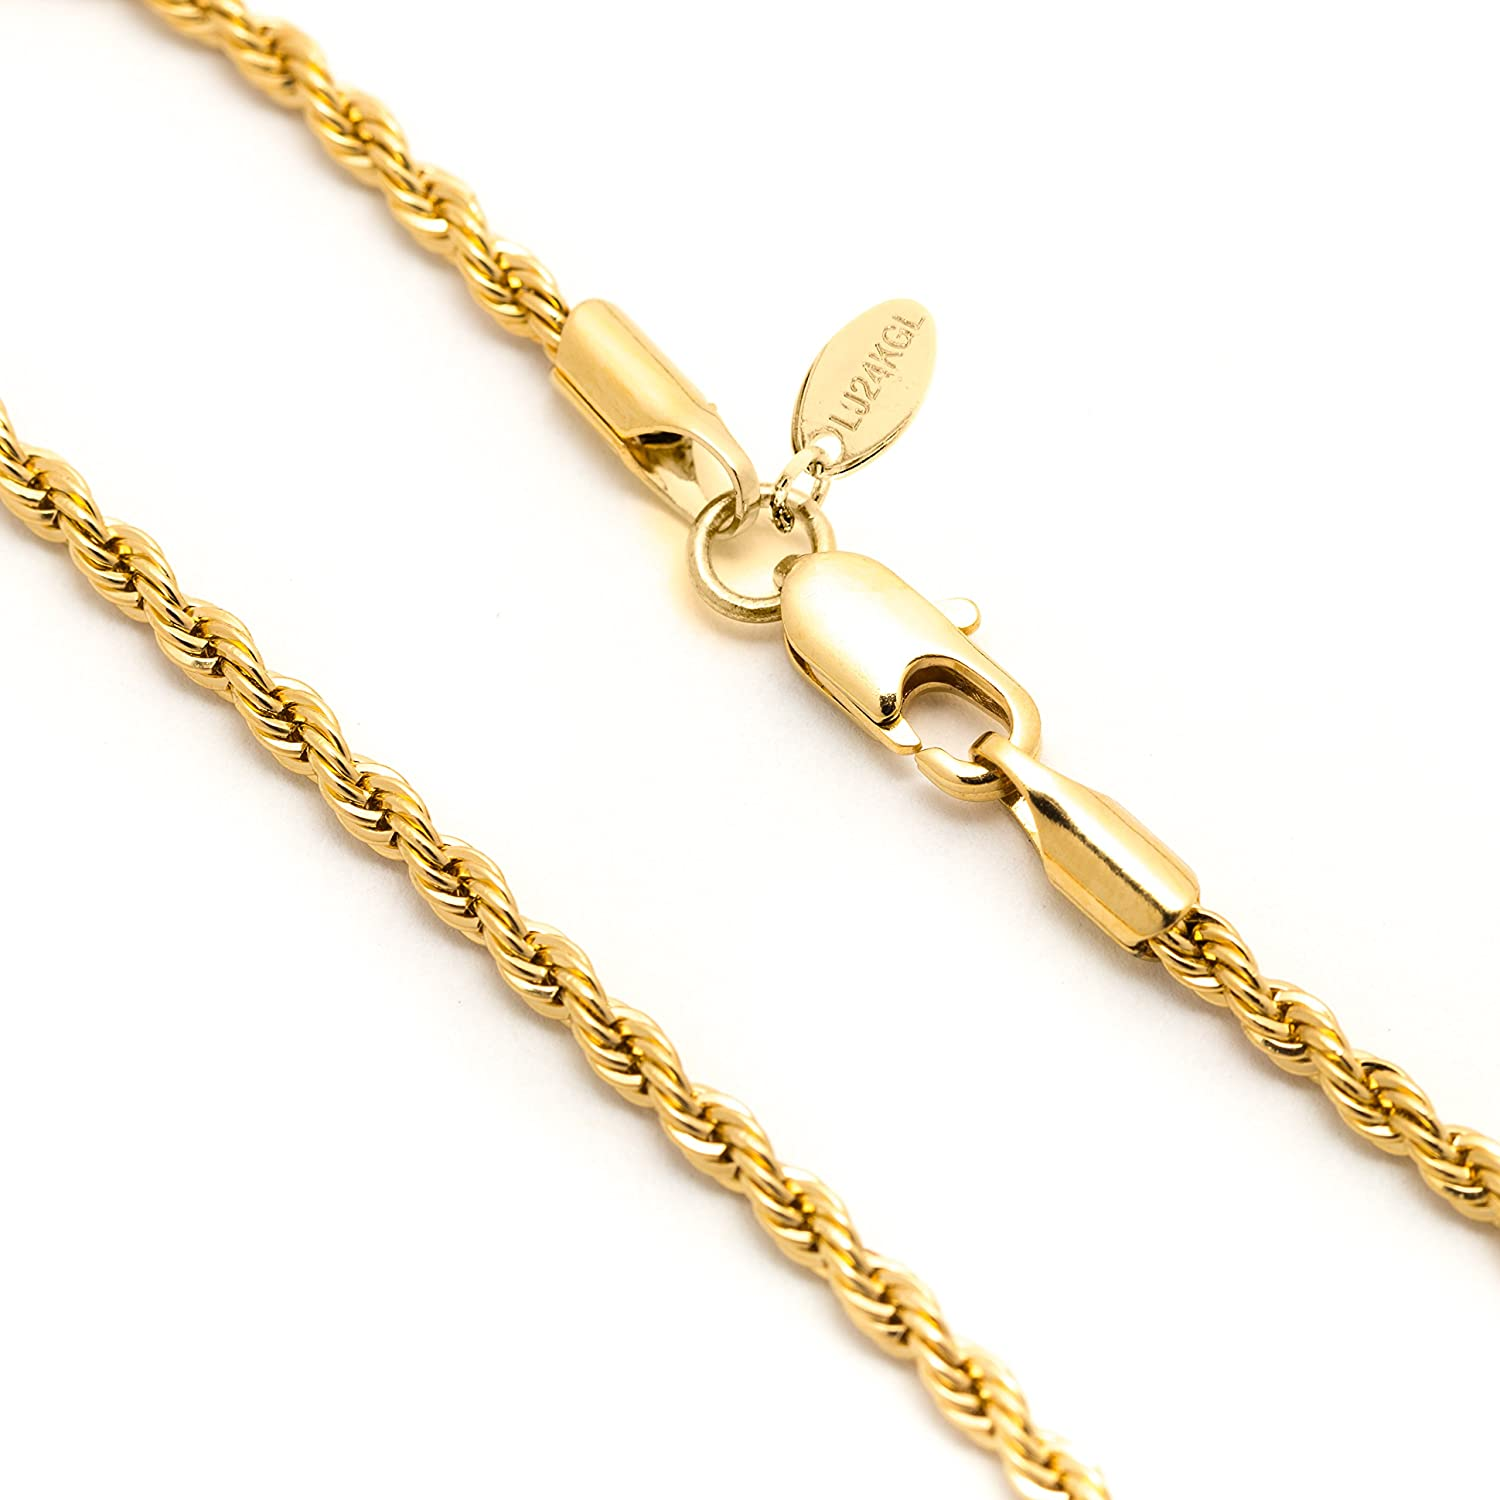 Amazon.com: Lifetime Jewelry 2MM Rope Chain, 24K Gold with Inlaid ...